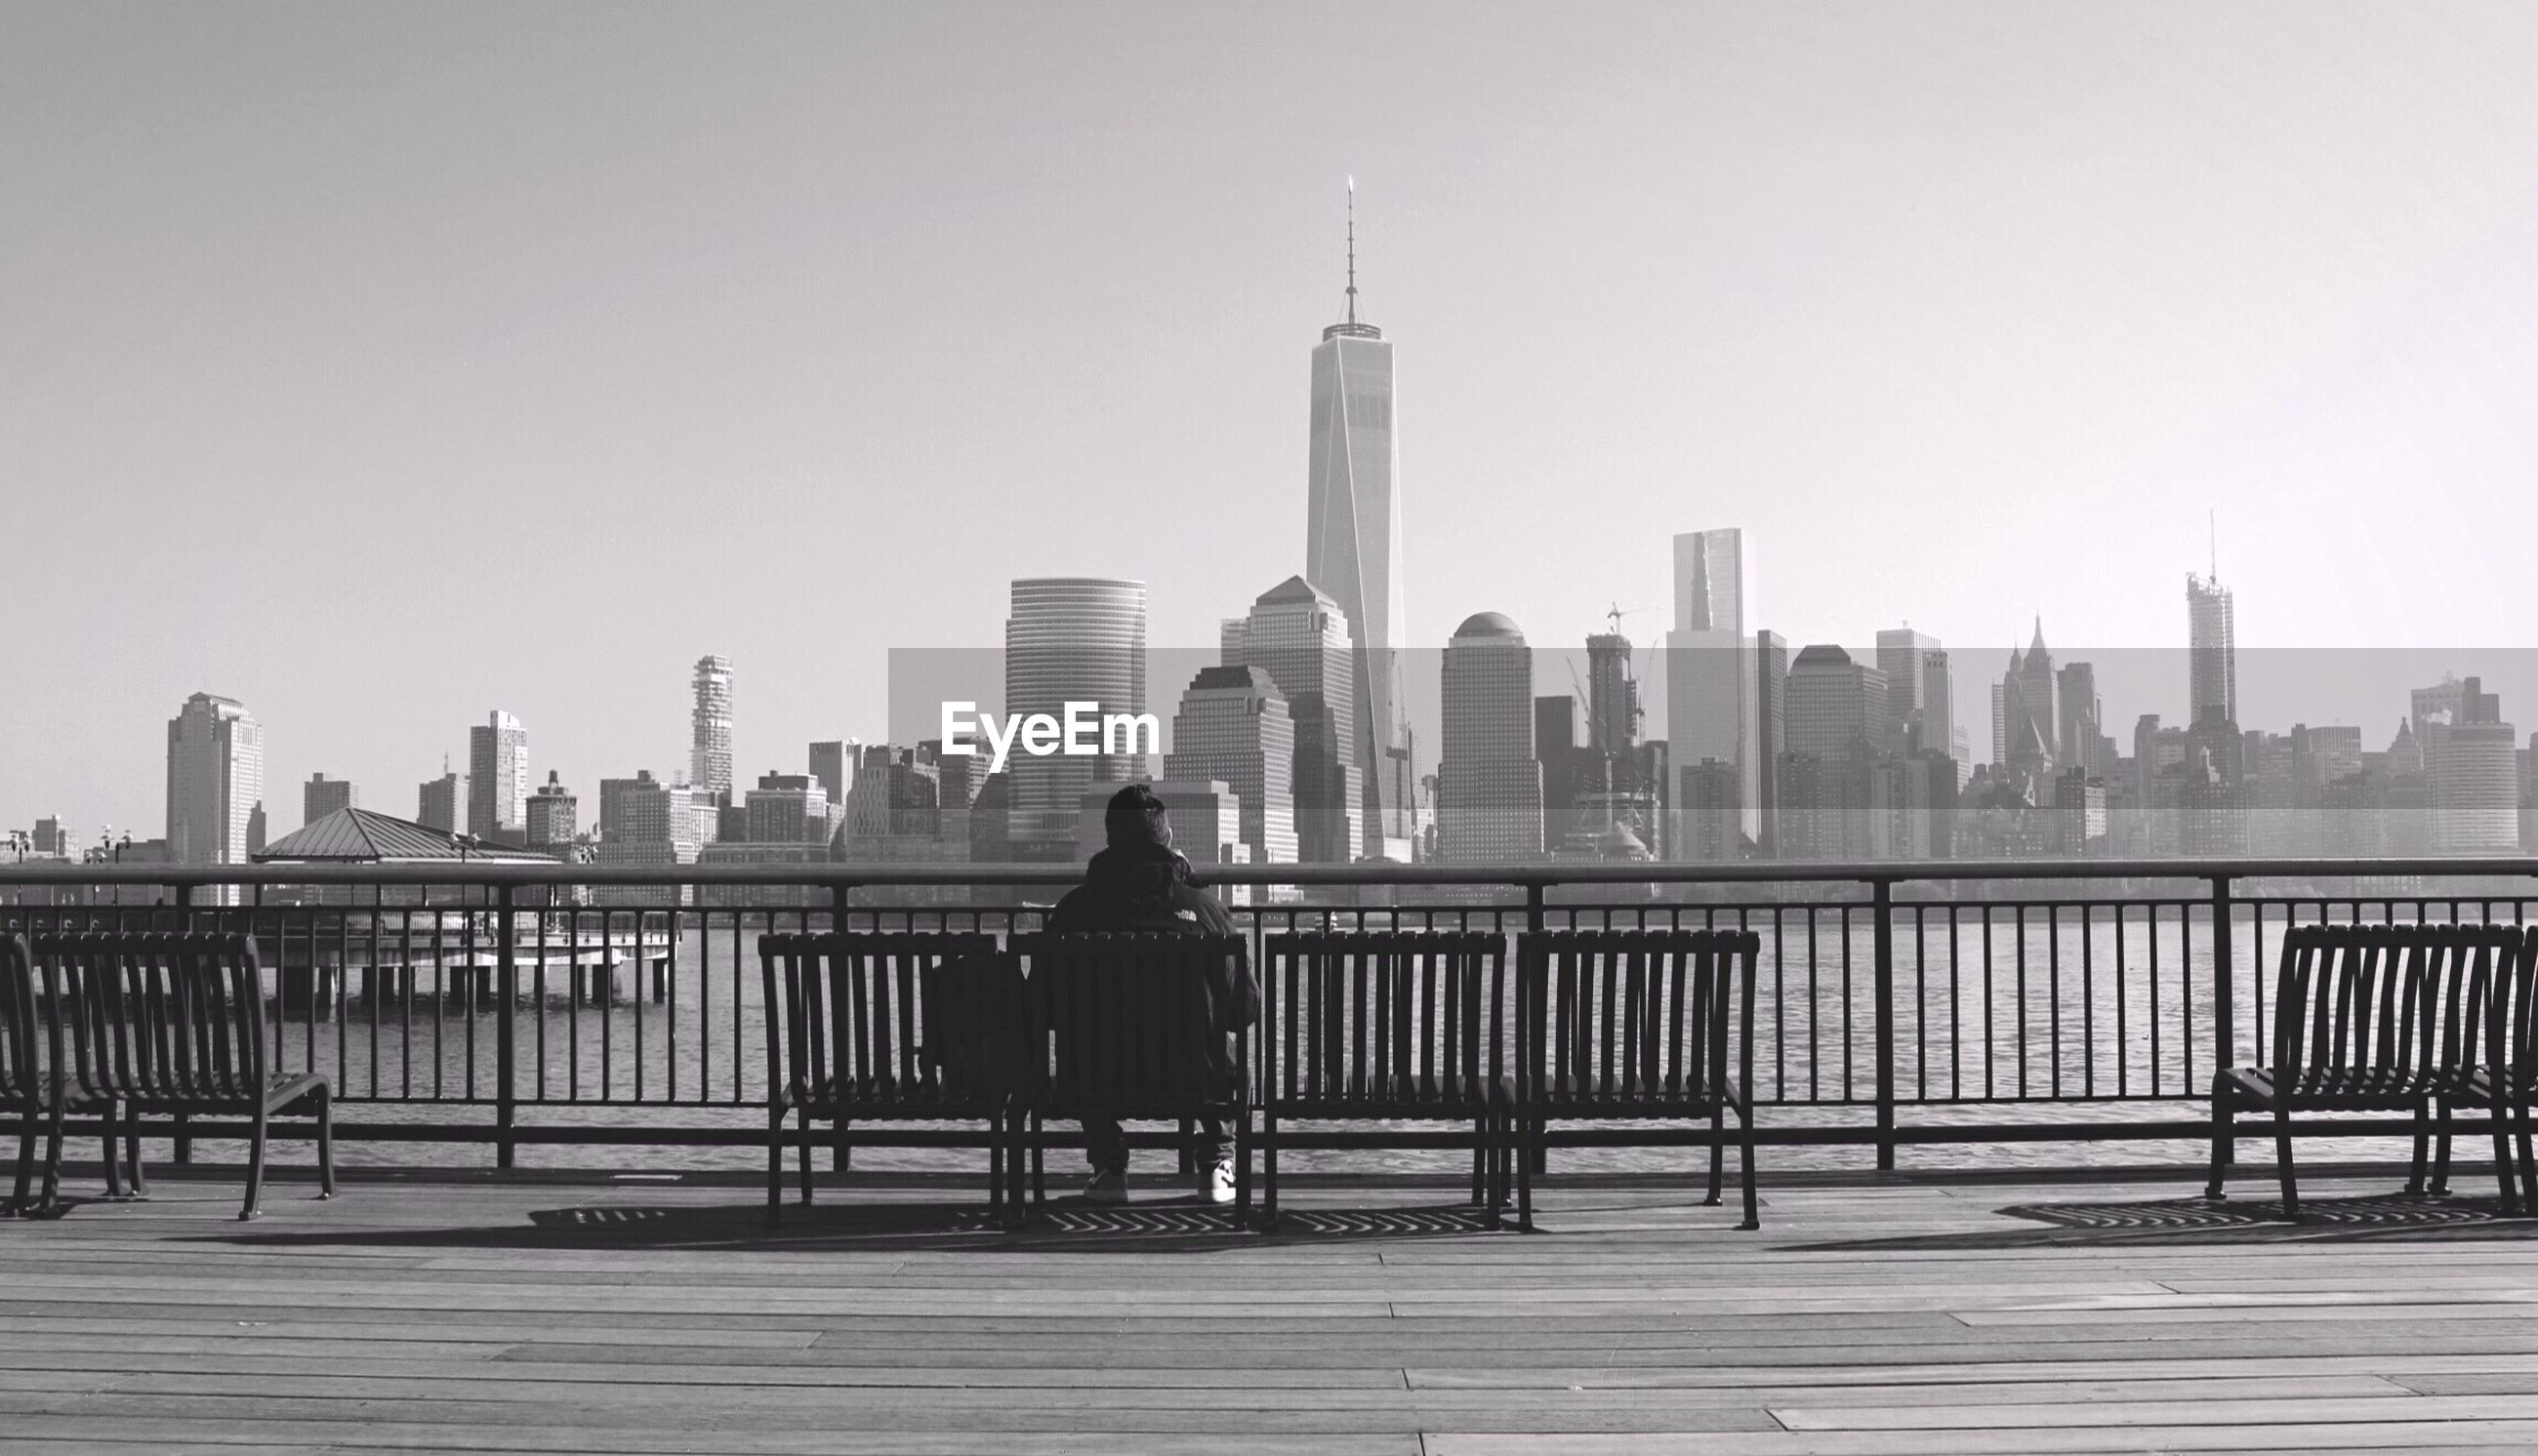 Rear view of man sitting on bench against one world trade center in city